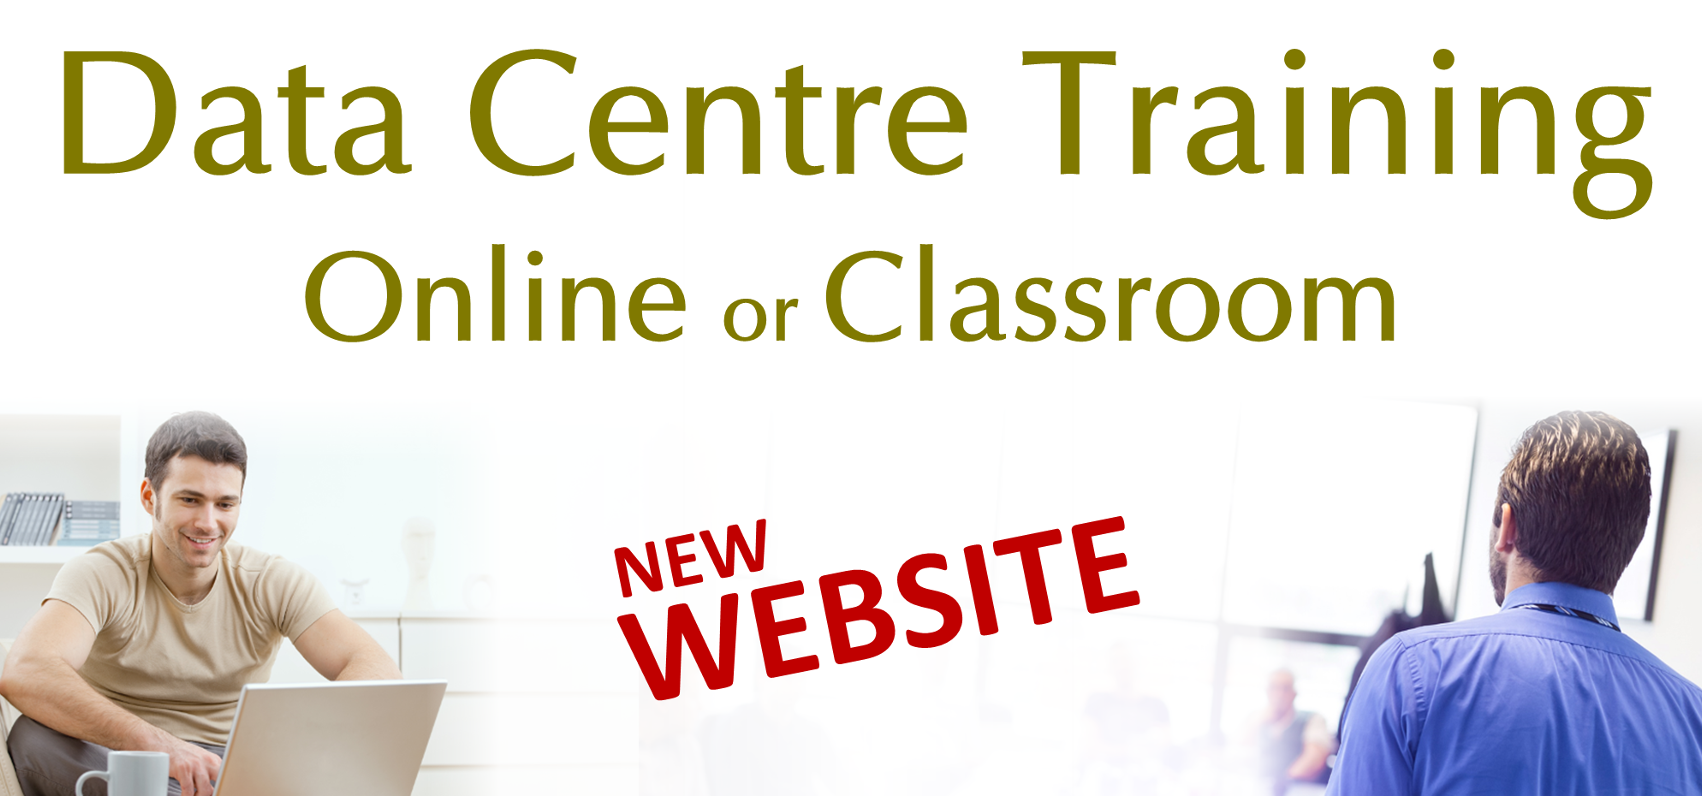 New Data Centre Training Website